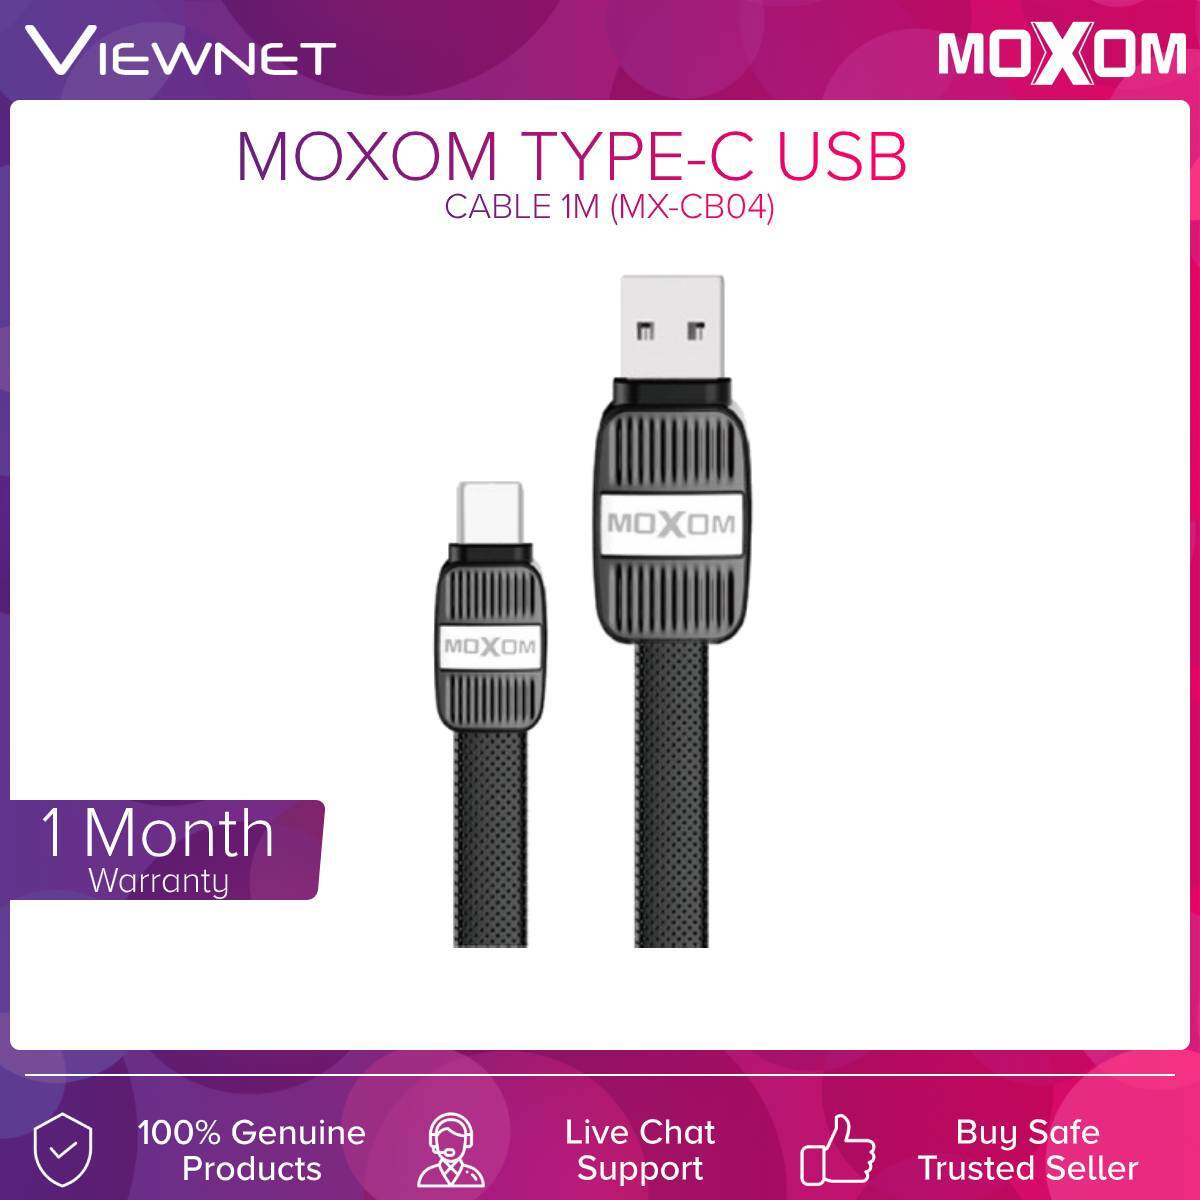 Moxom Micro Usb / 8 Pin / Type-c Cable 1M (MX-CB04) (BLK)